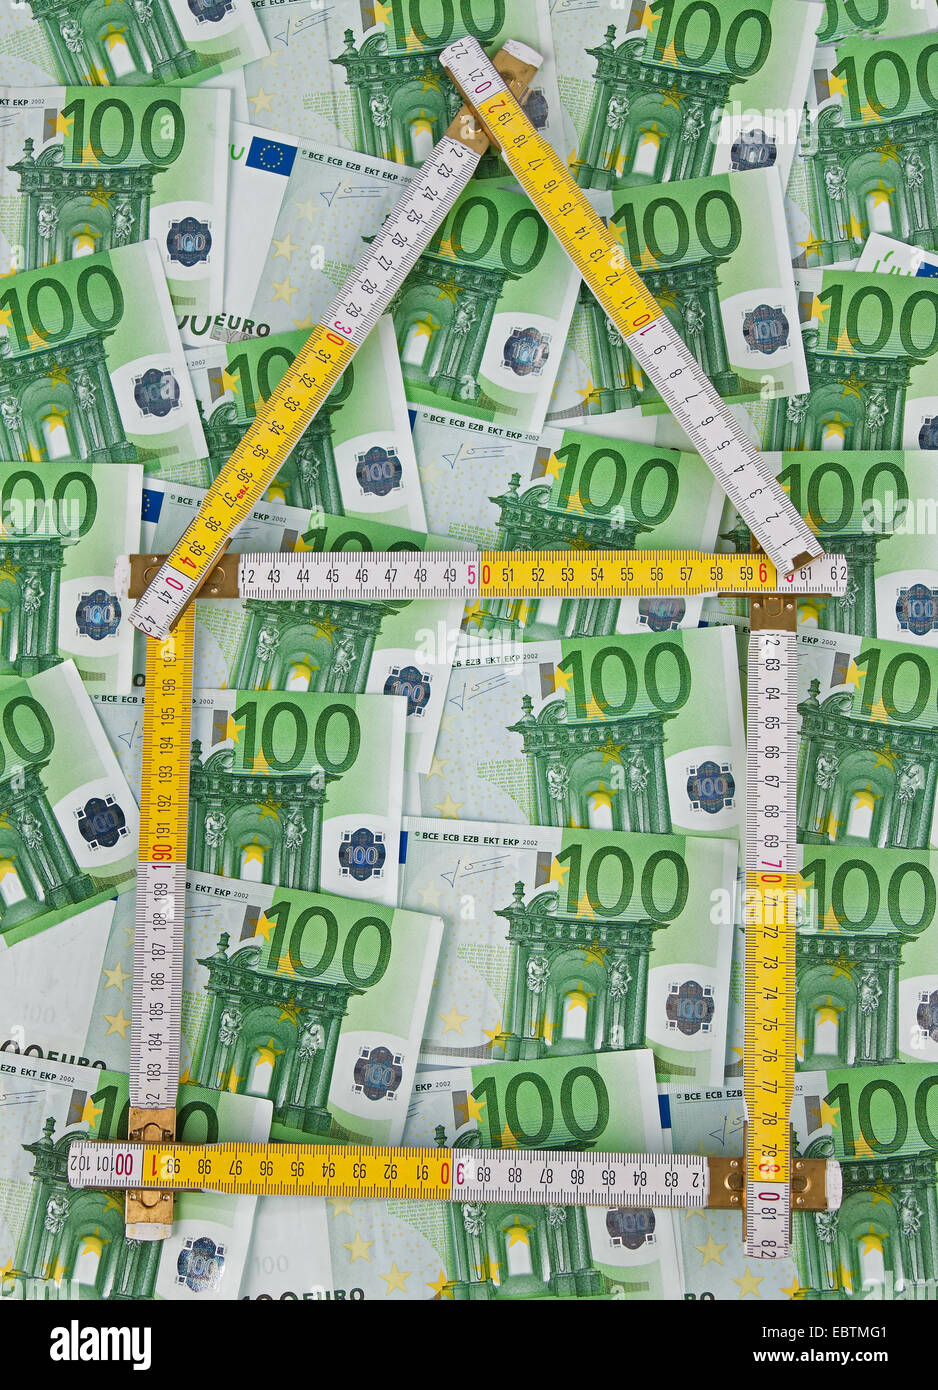 Buying a house. Many euro notes and yardstick, Germany - Stock Image